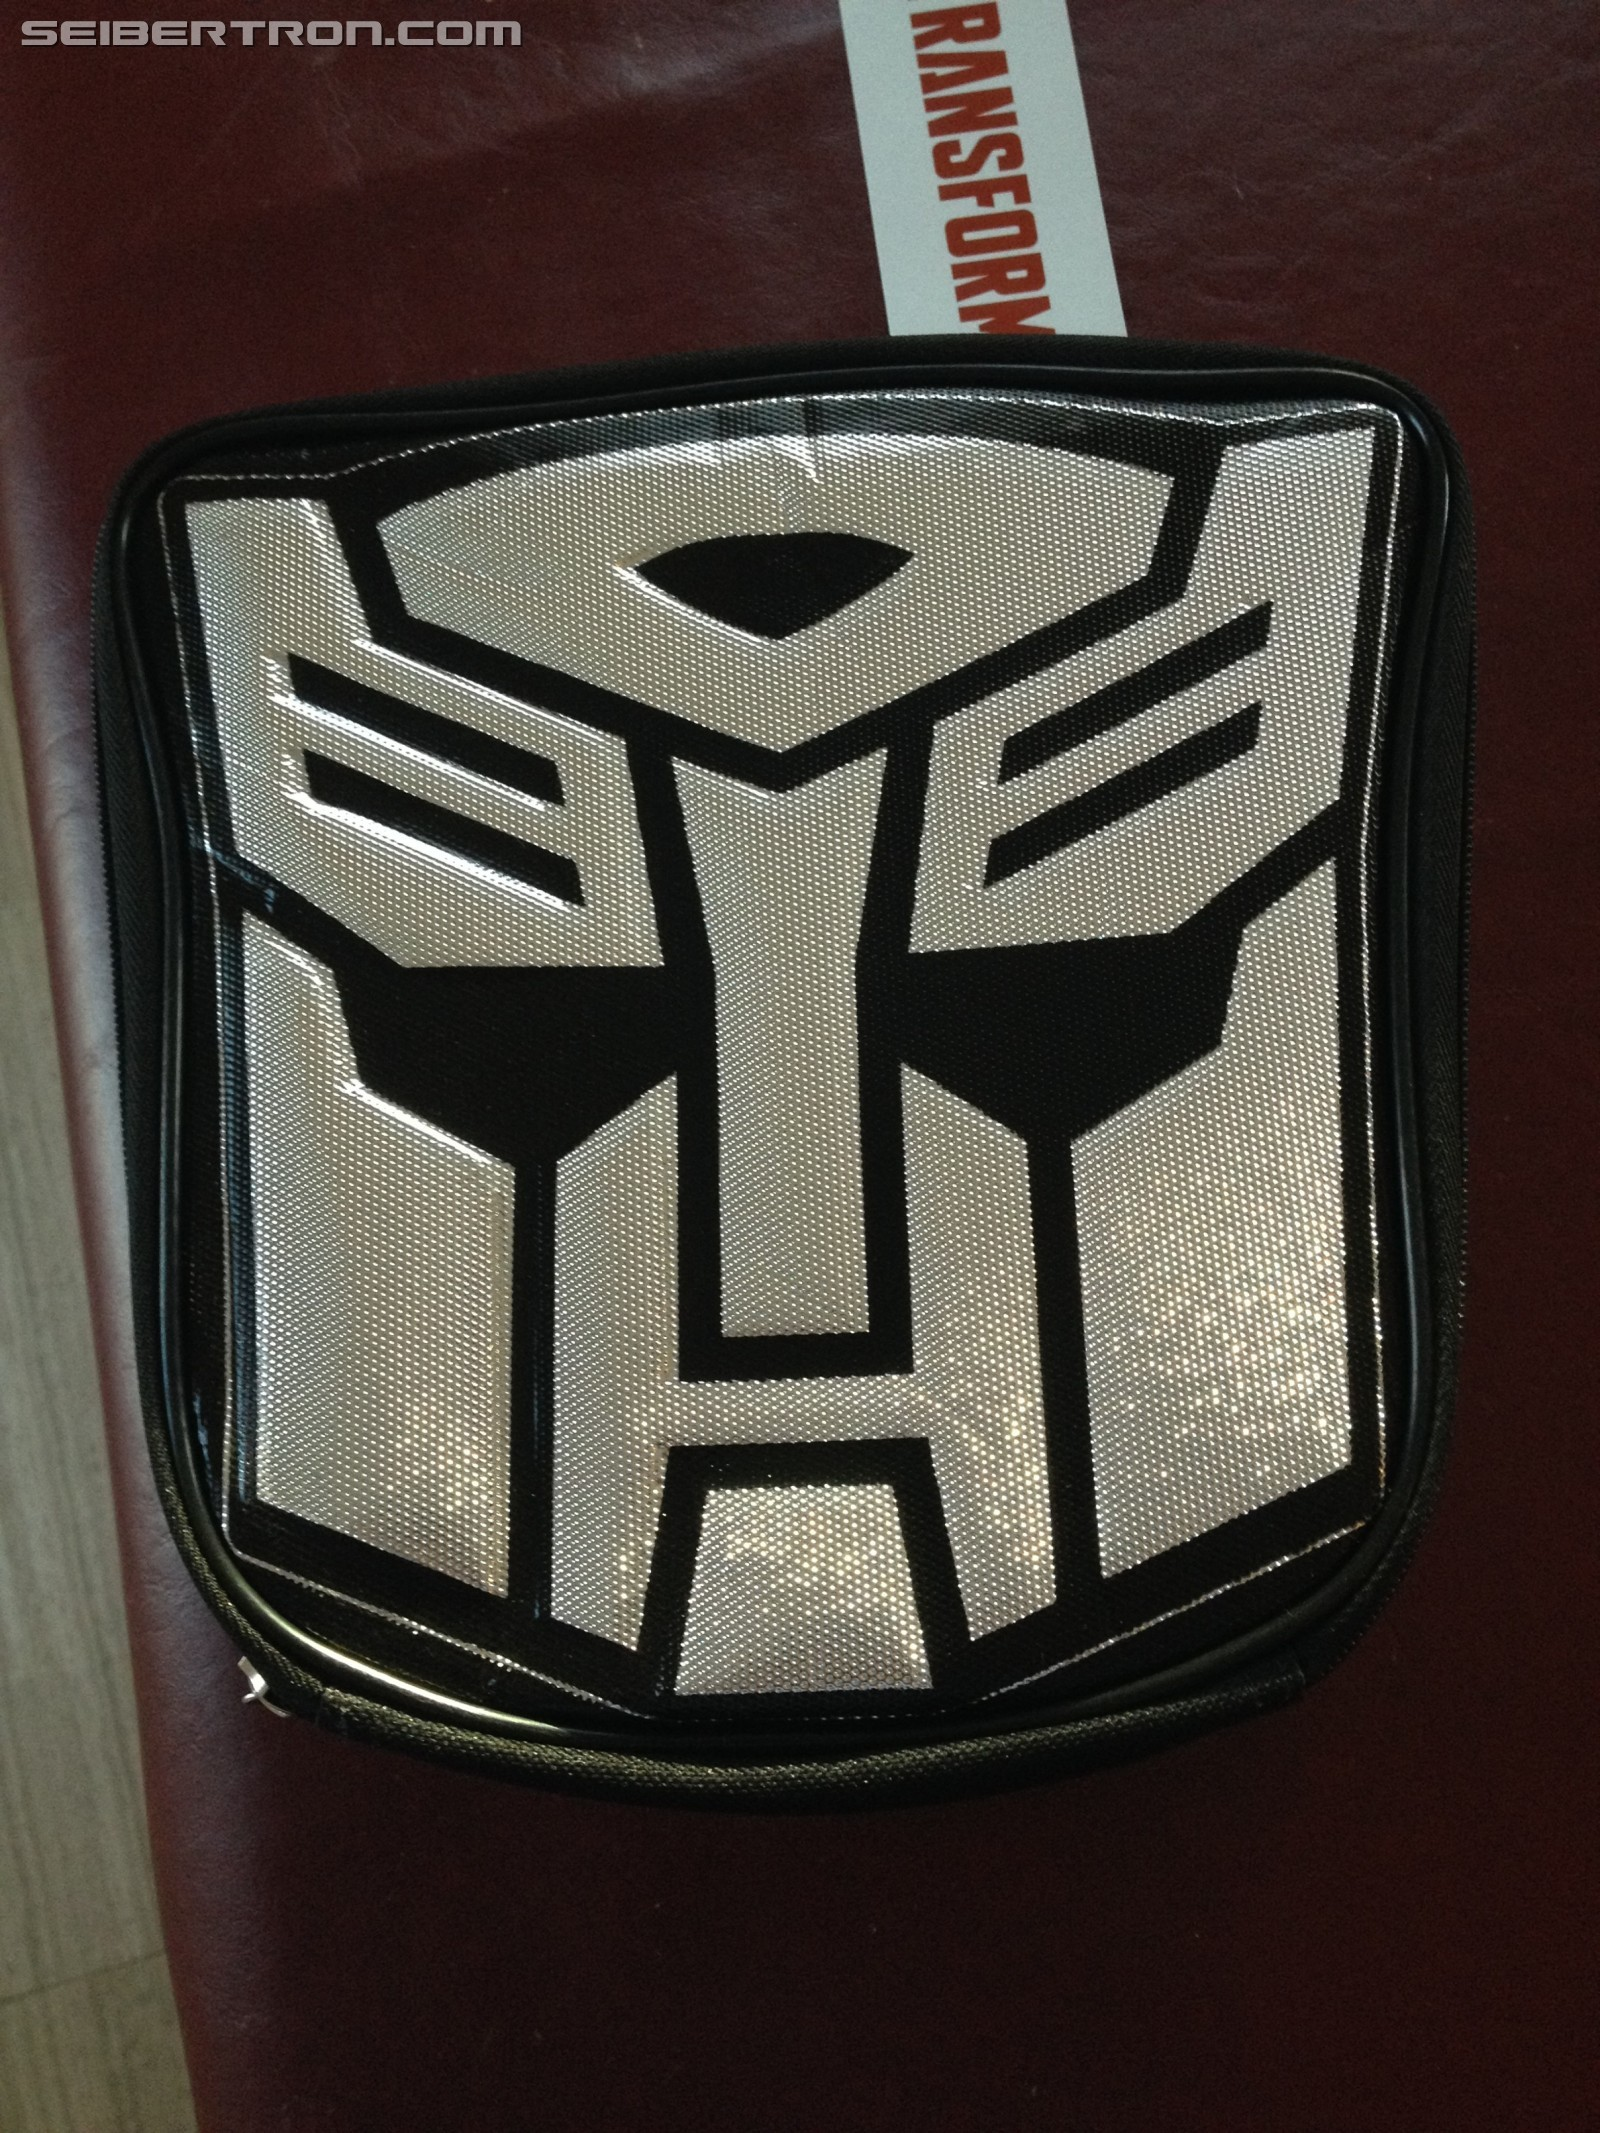 Transformers News: In Hand Images of Transformers: The Last Knight Valvoline Lunch Box